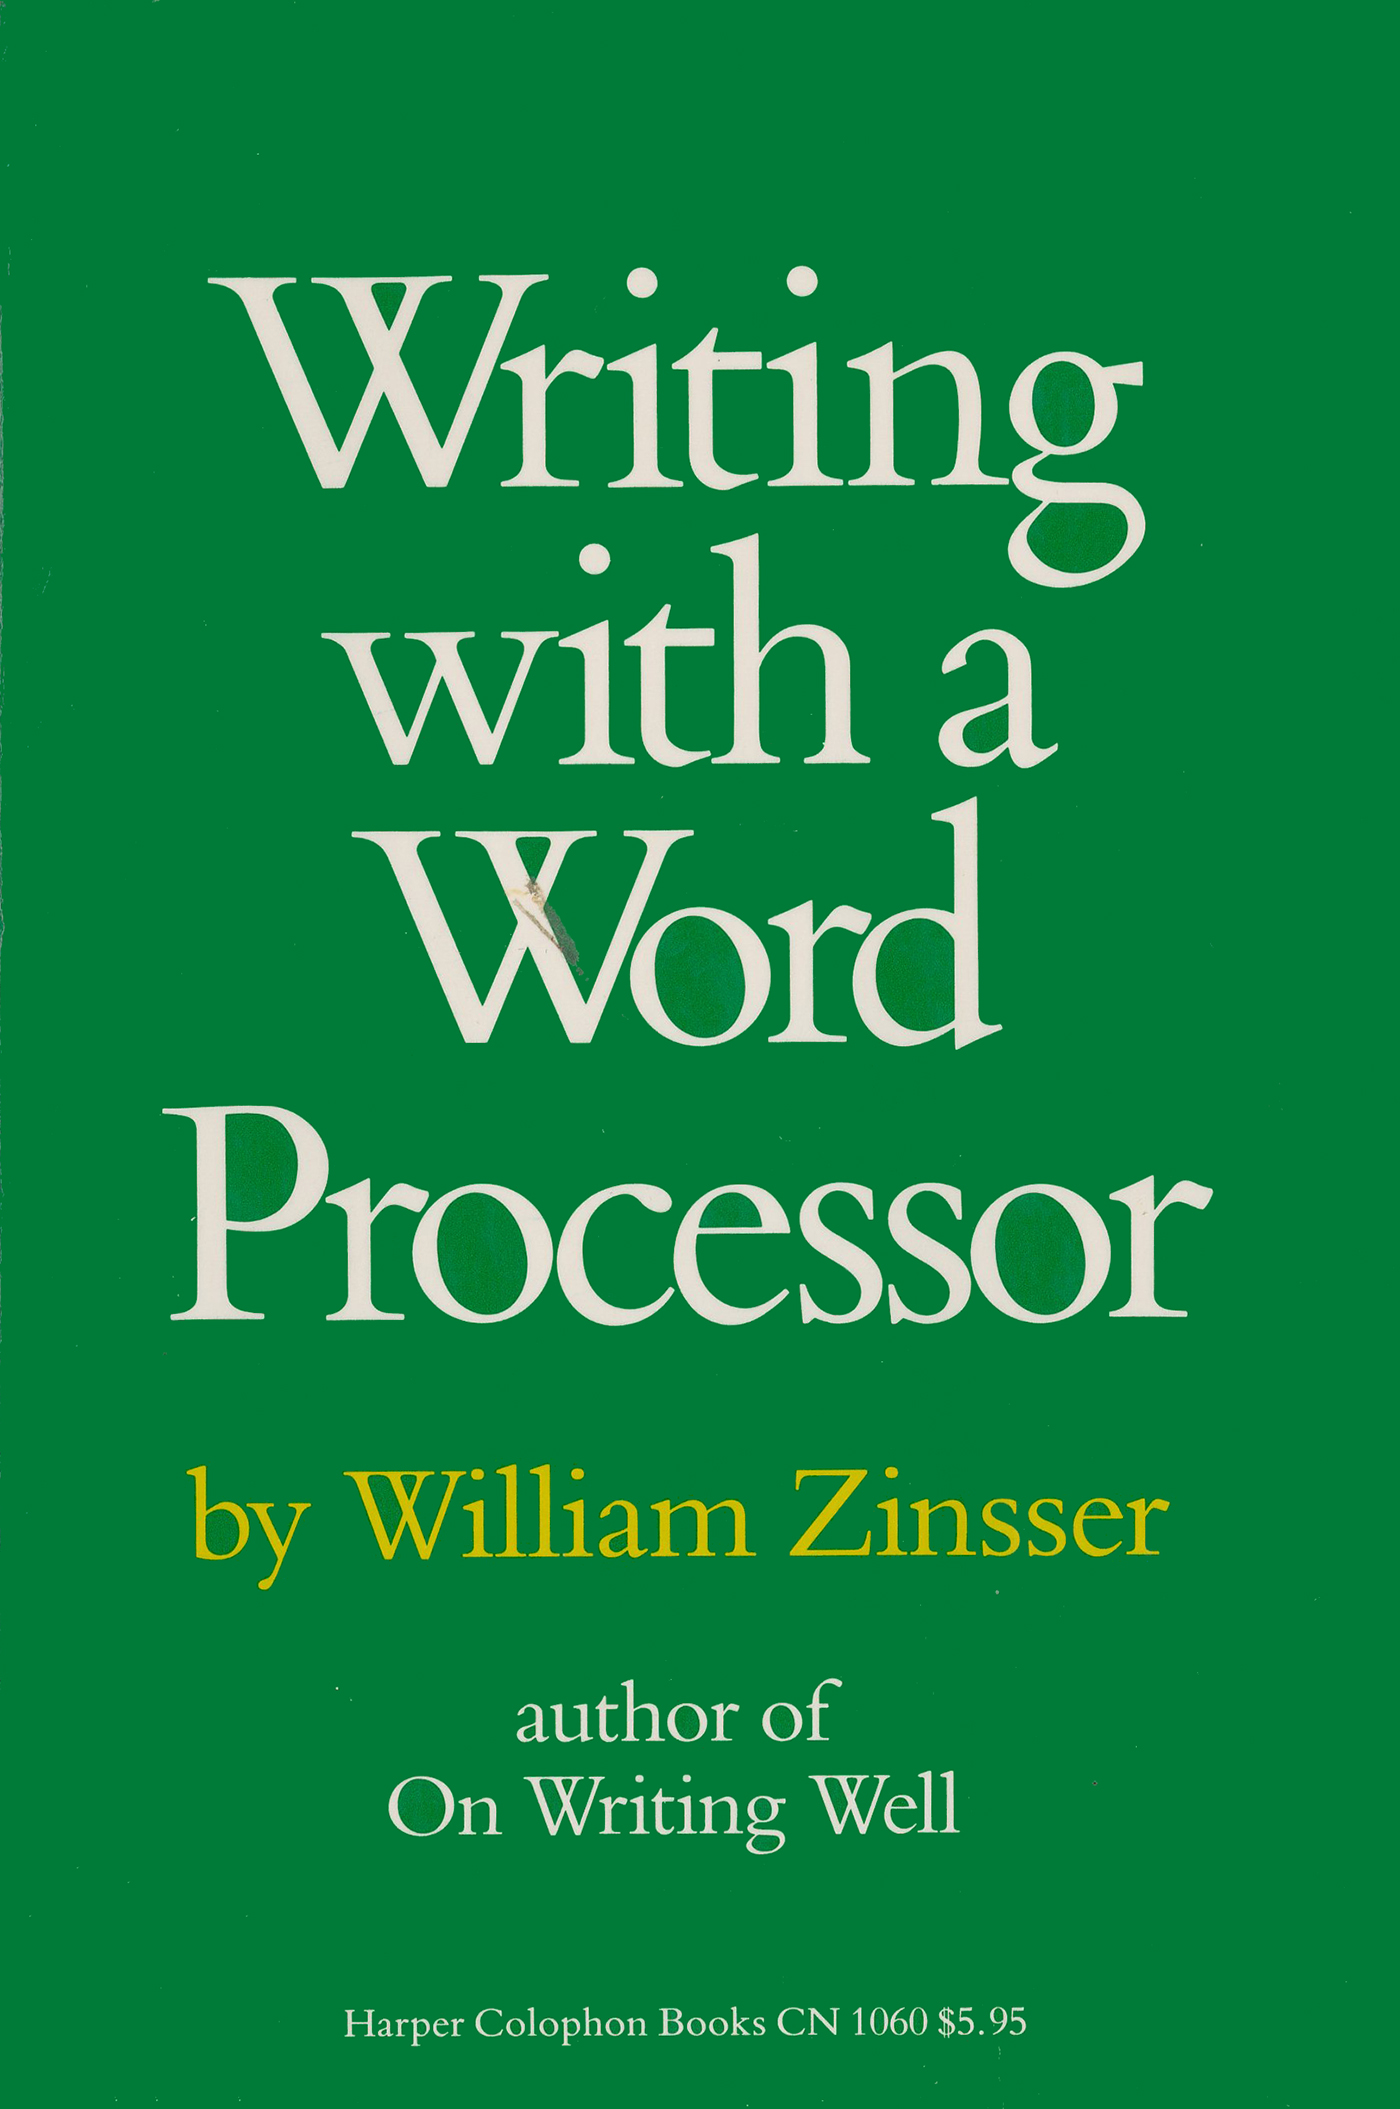 analysis paper zinssers book on writing 2 essay